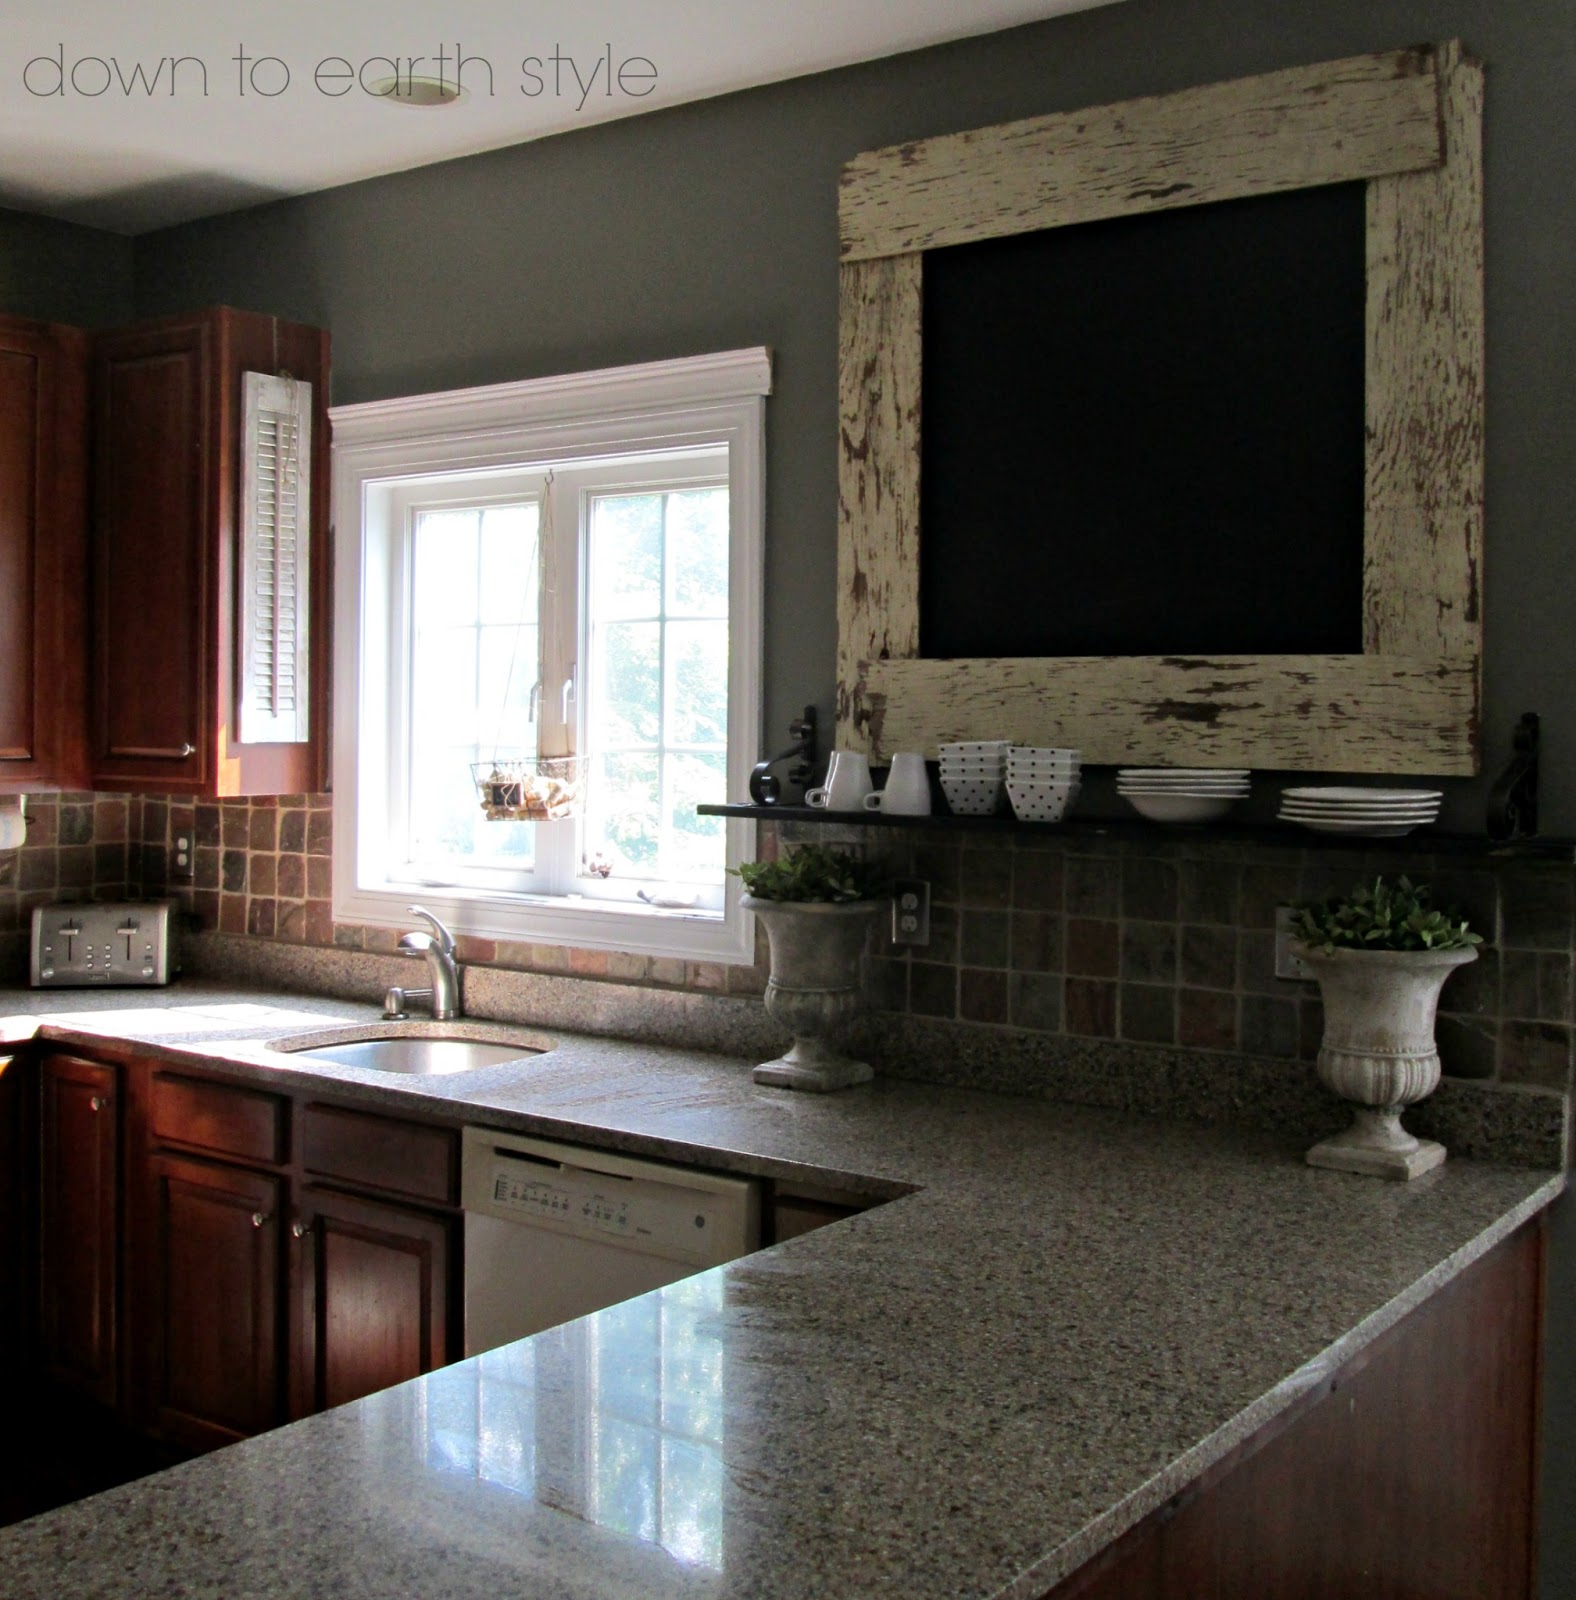 Chalk Paint Kitchen Cabinets Green: Down To Earth Style: Remove A Kitchen Cabinet For Openness